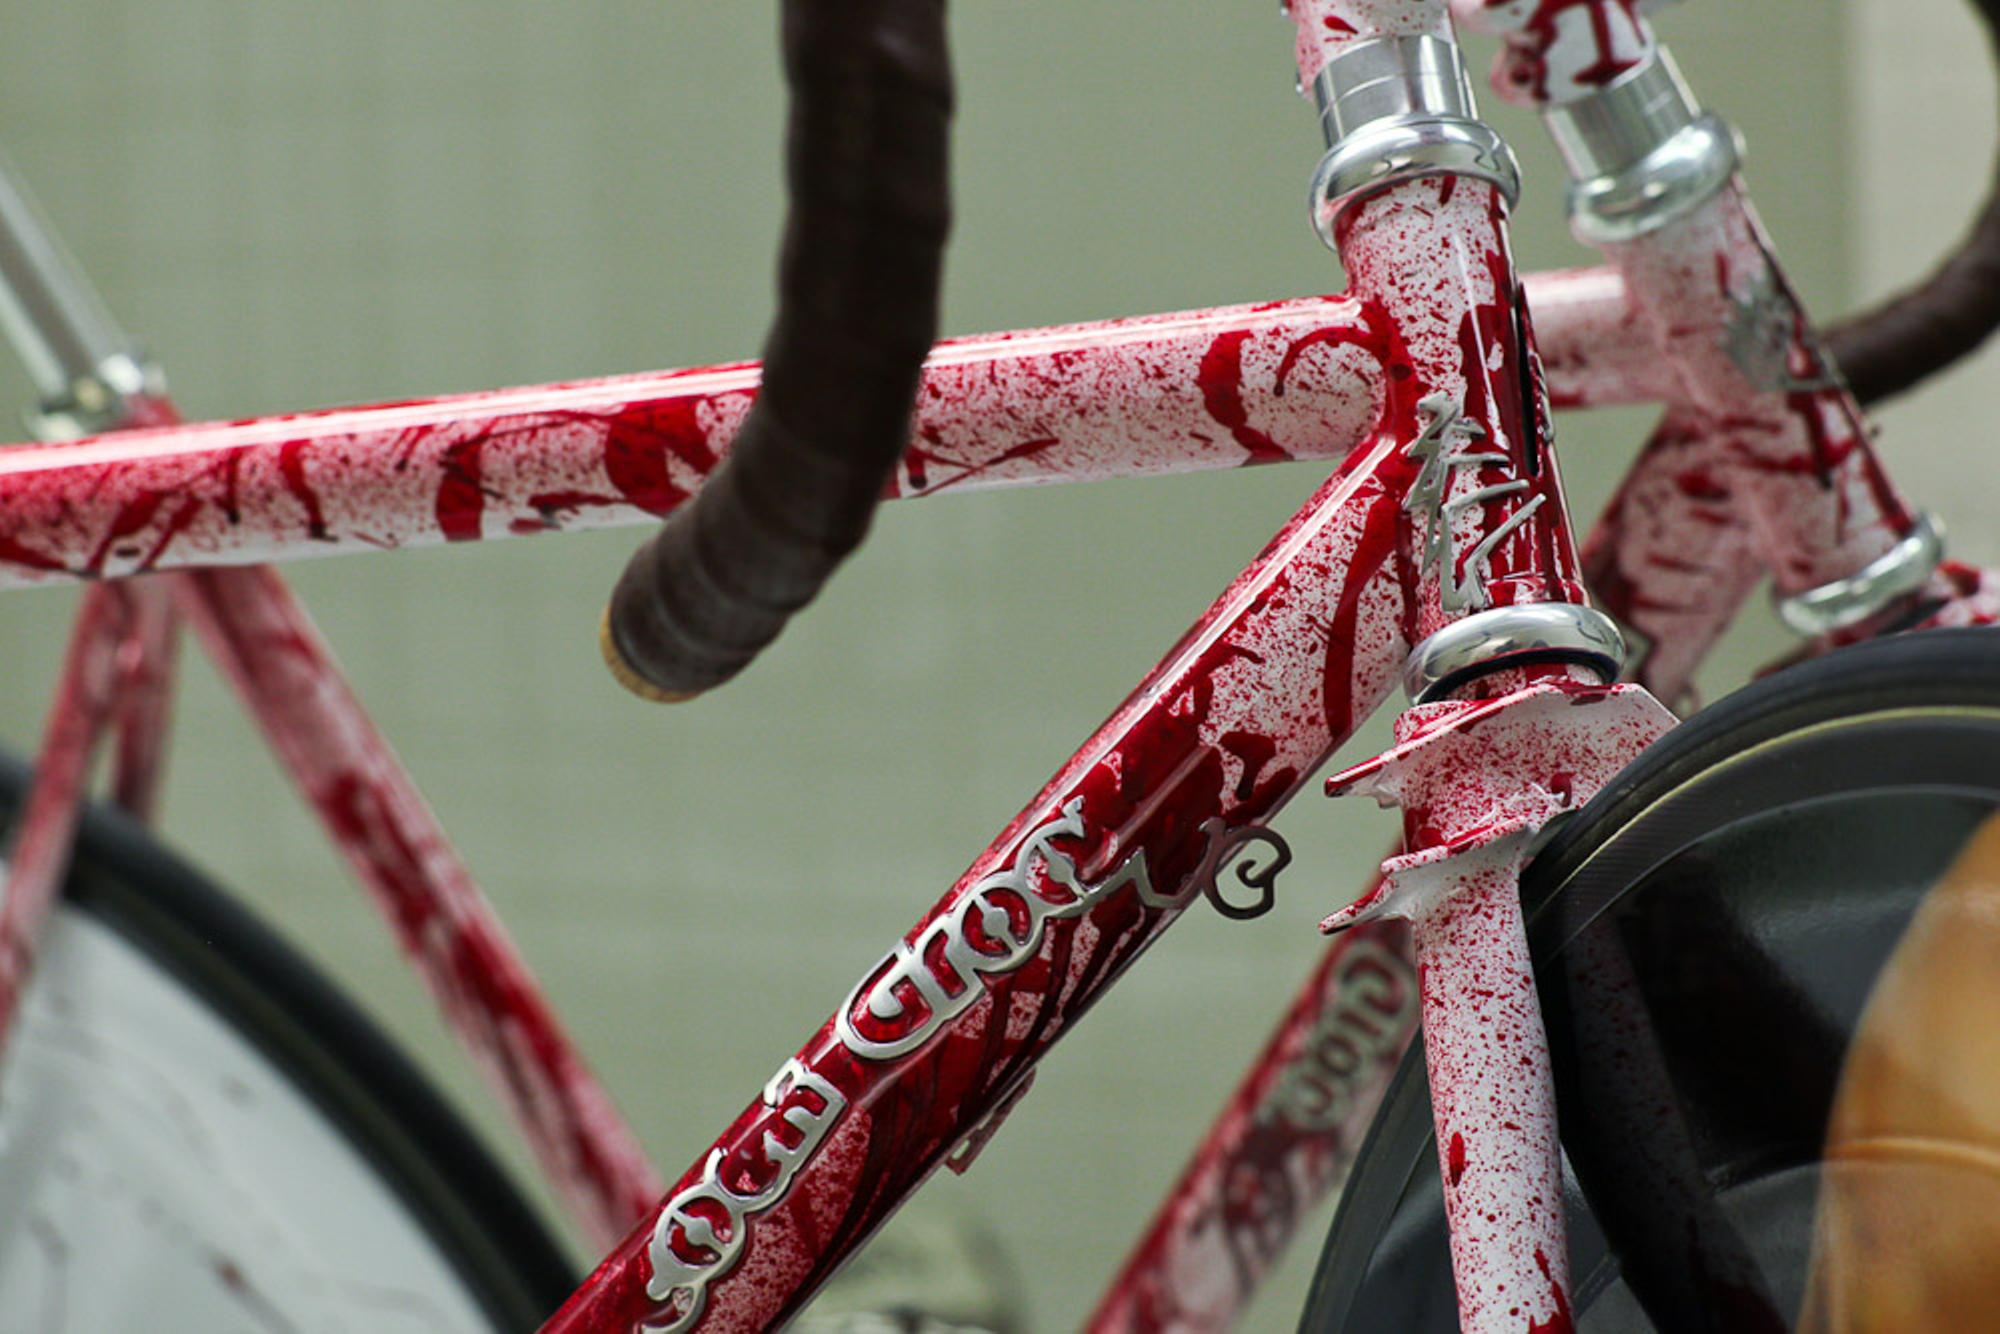 Blood splattered, wrecked downtube.